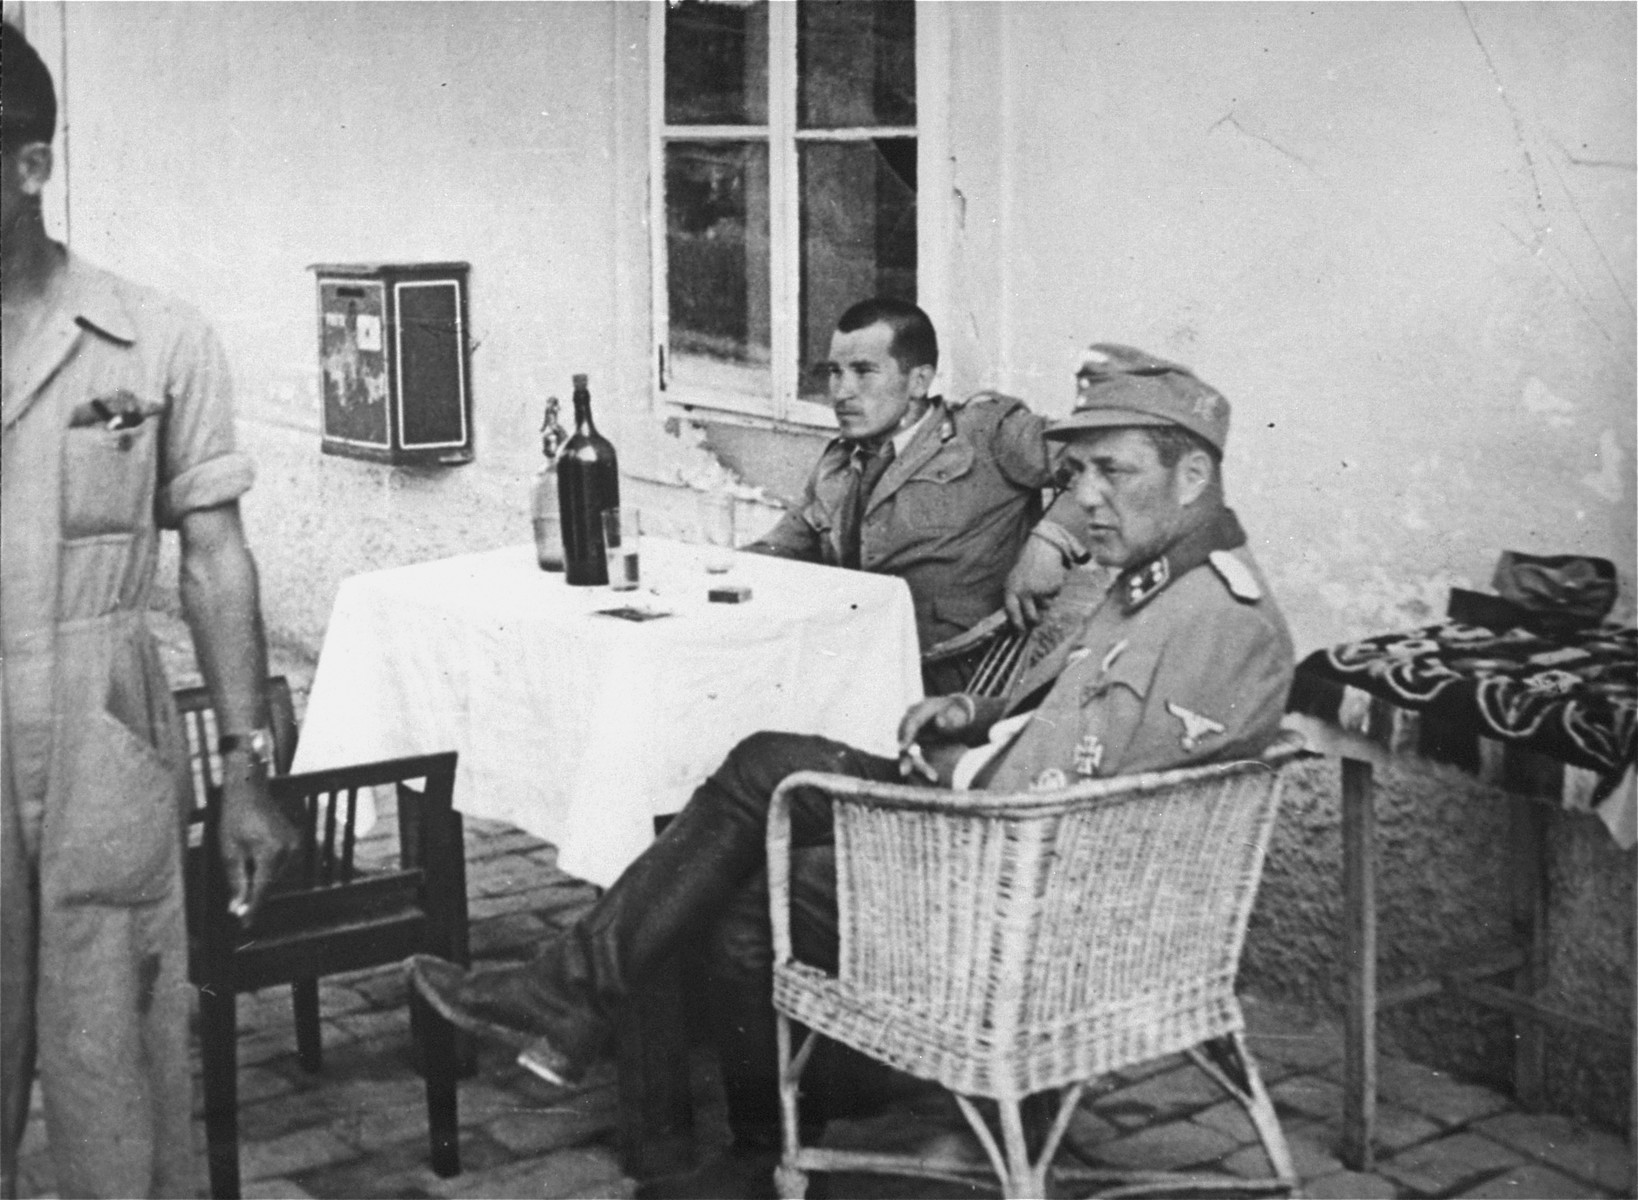 Vjekoslav Luburic sits at a table with a German officer in the Stara Gradiska concentration camp.